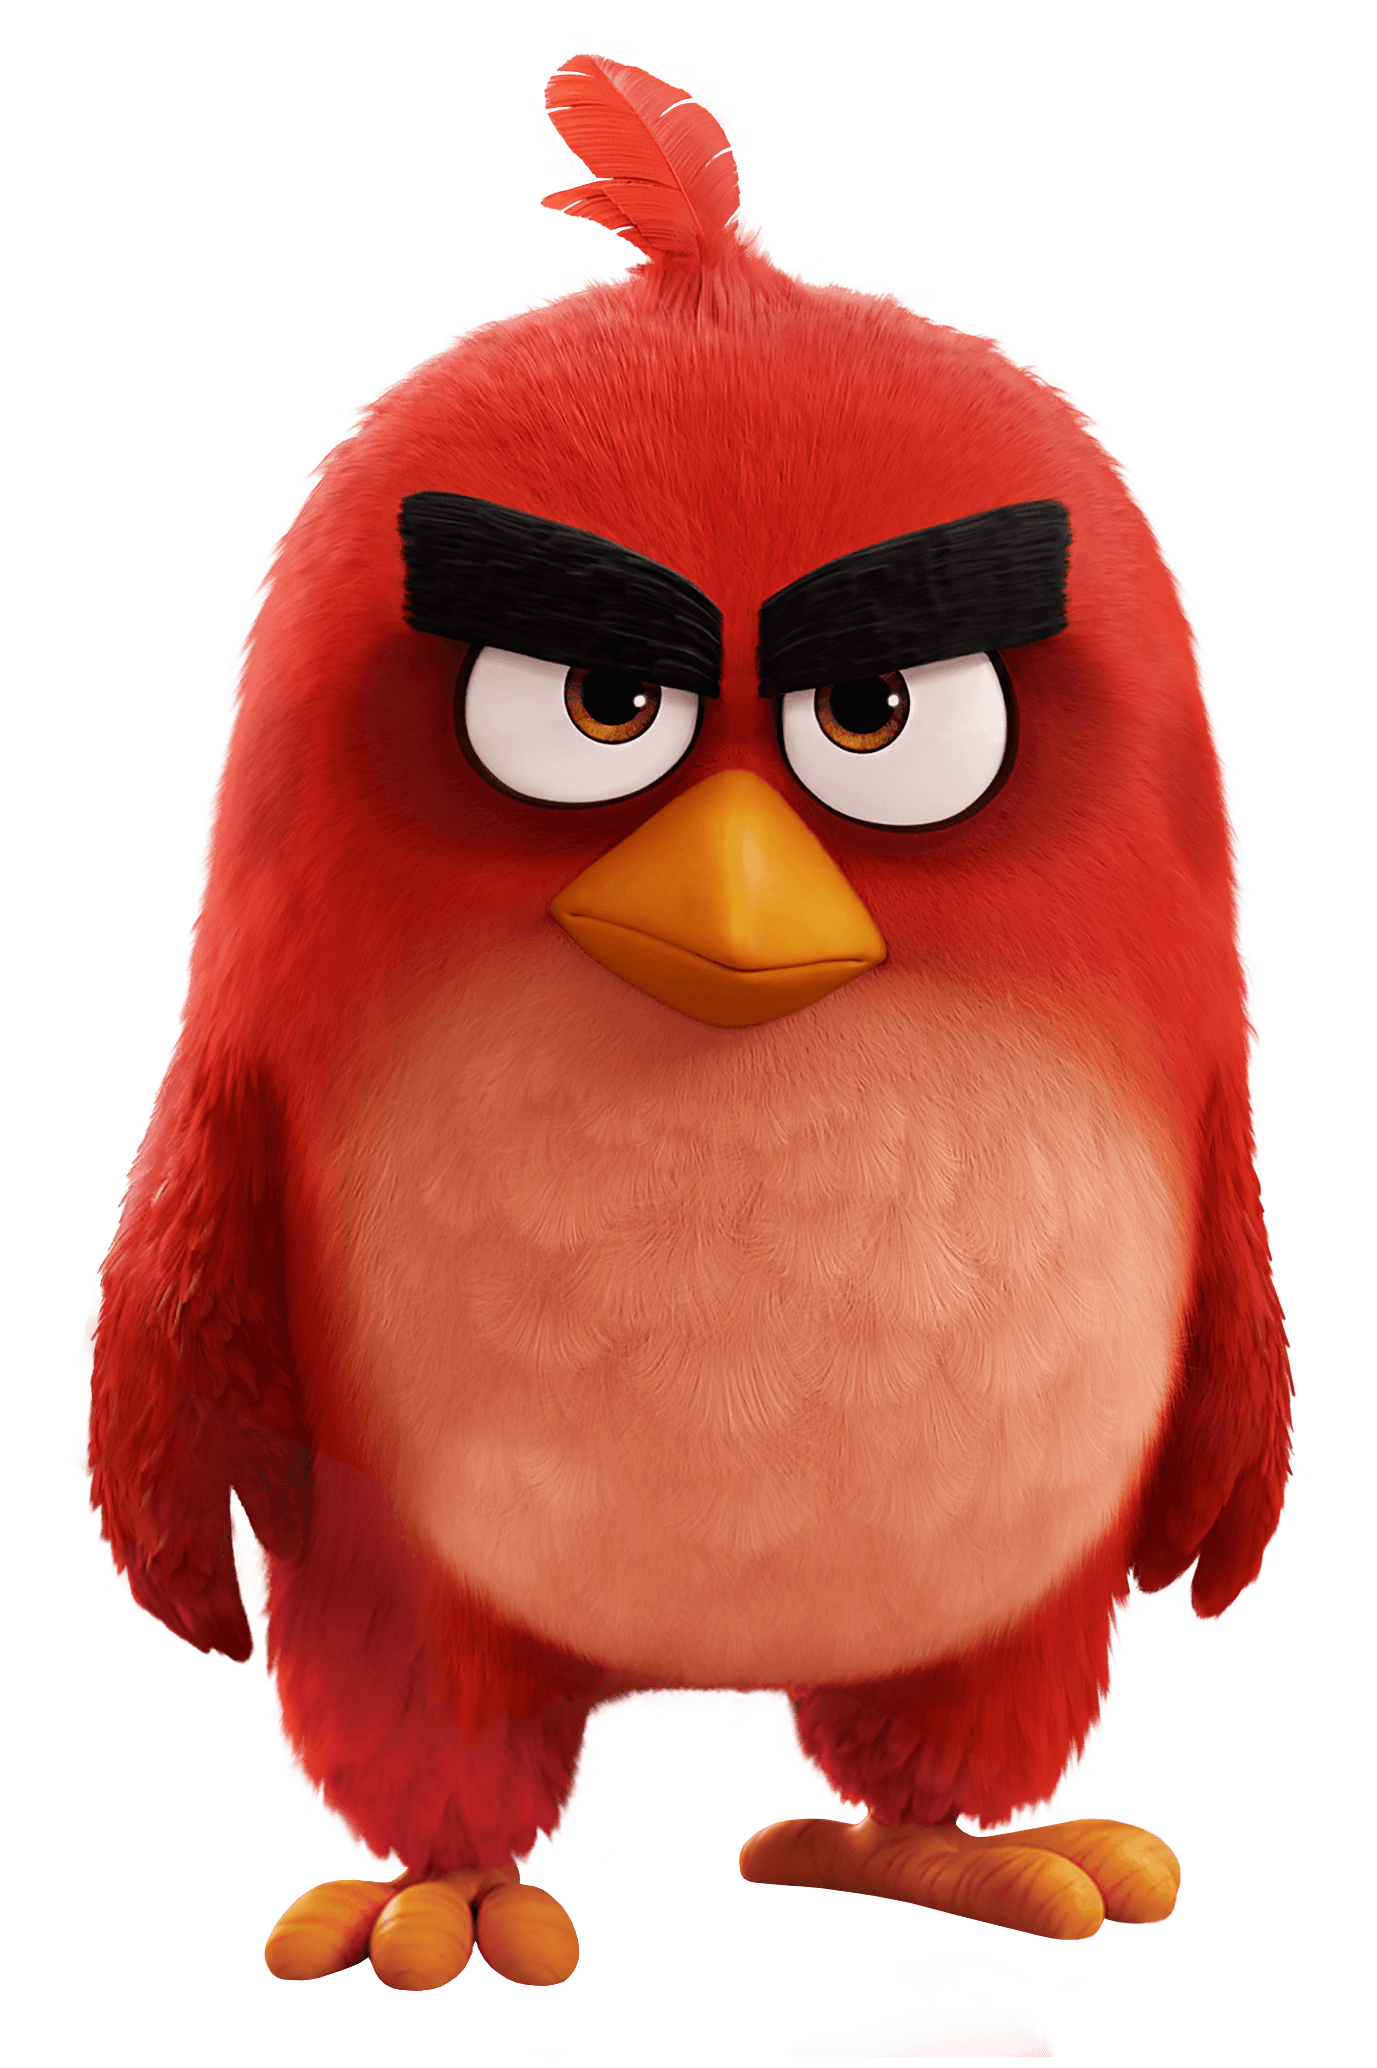 Red bird png. Angry birds movie transparent